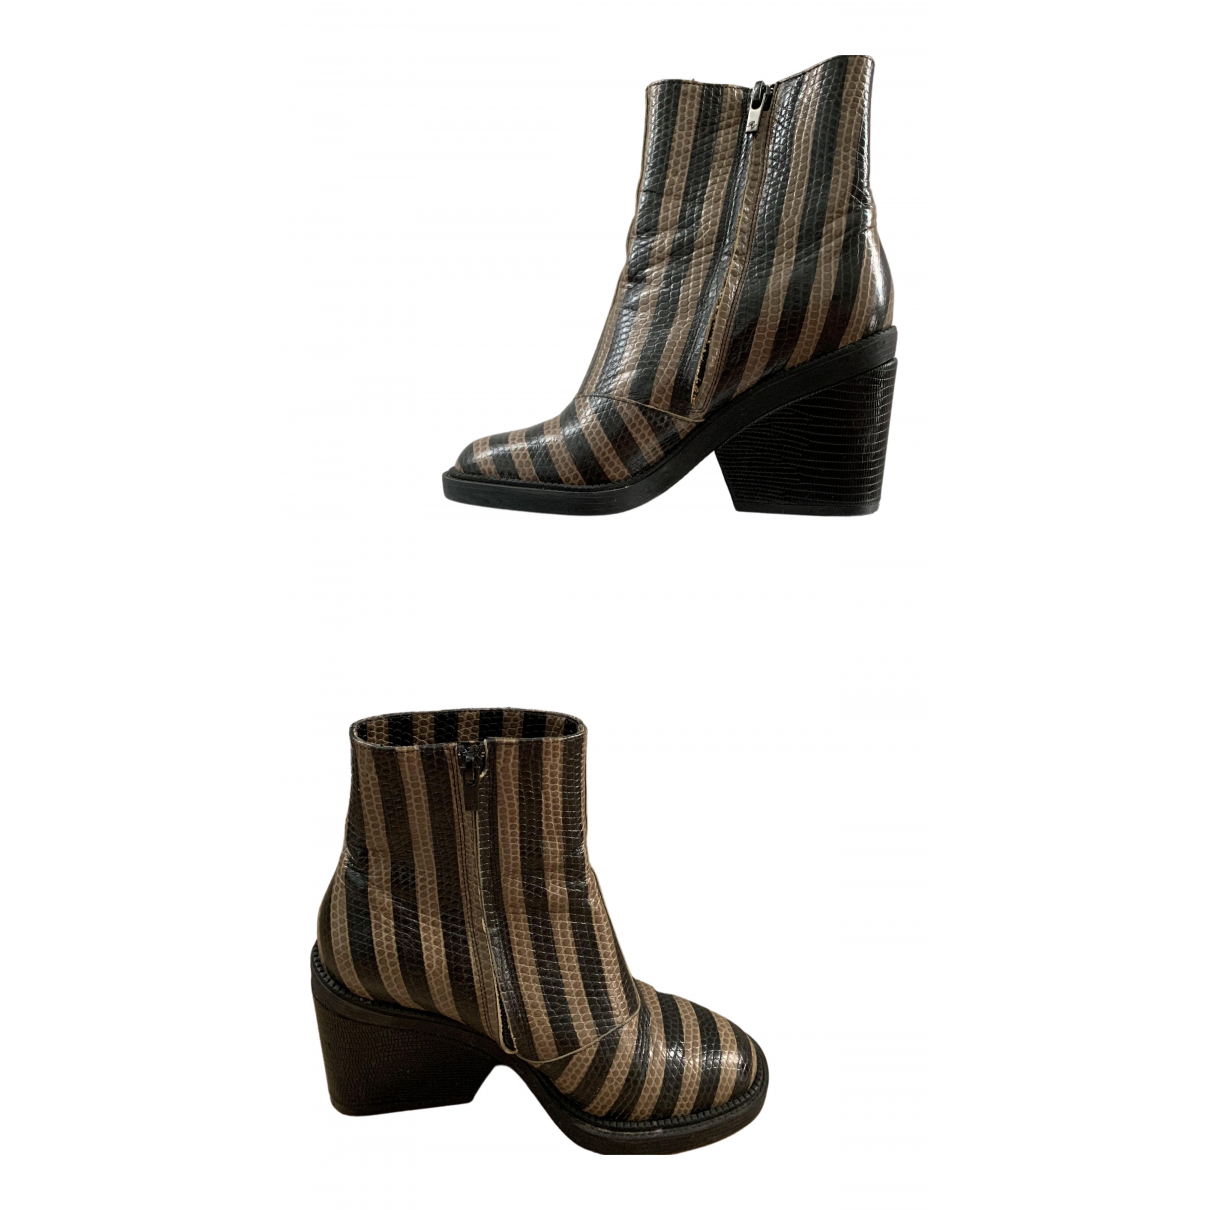 Robert Clergerie N Brown Patent leather Ankle boots for Women 37 EU